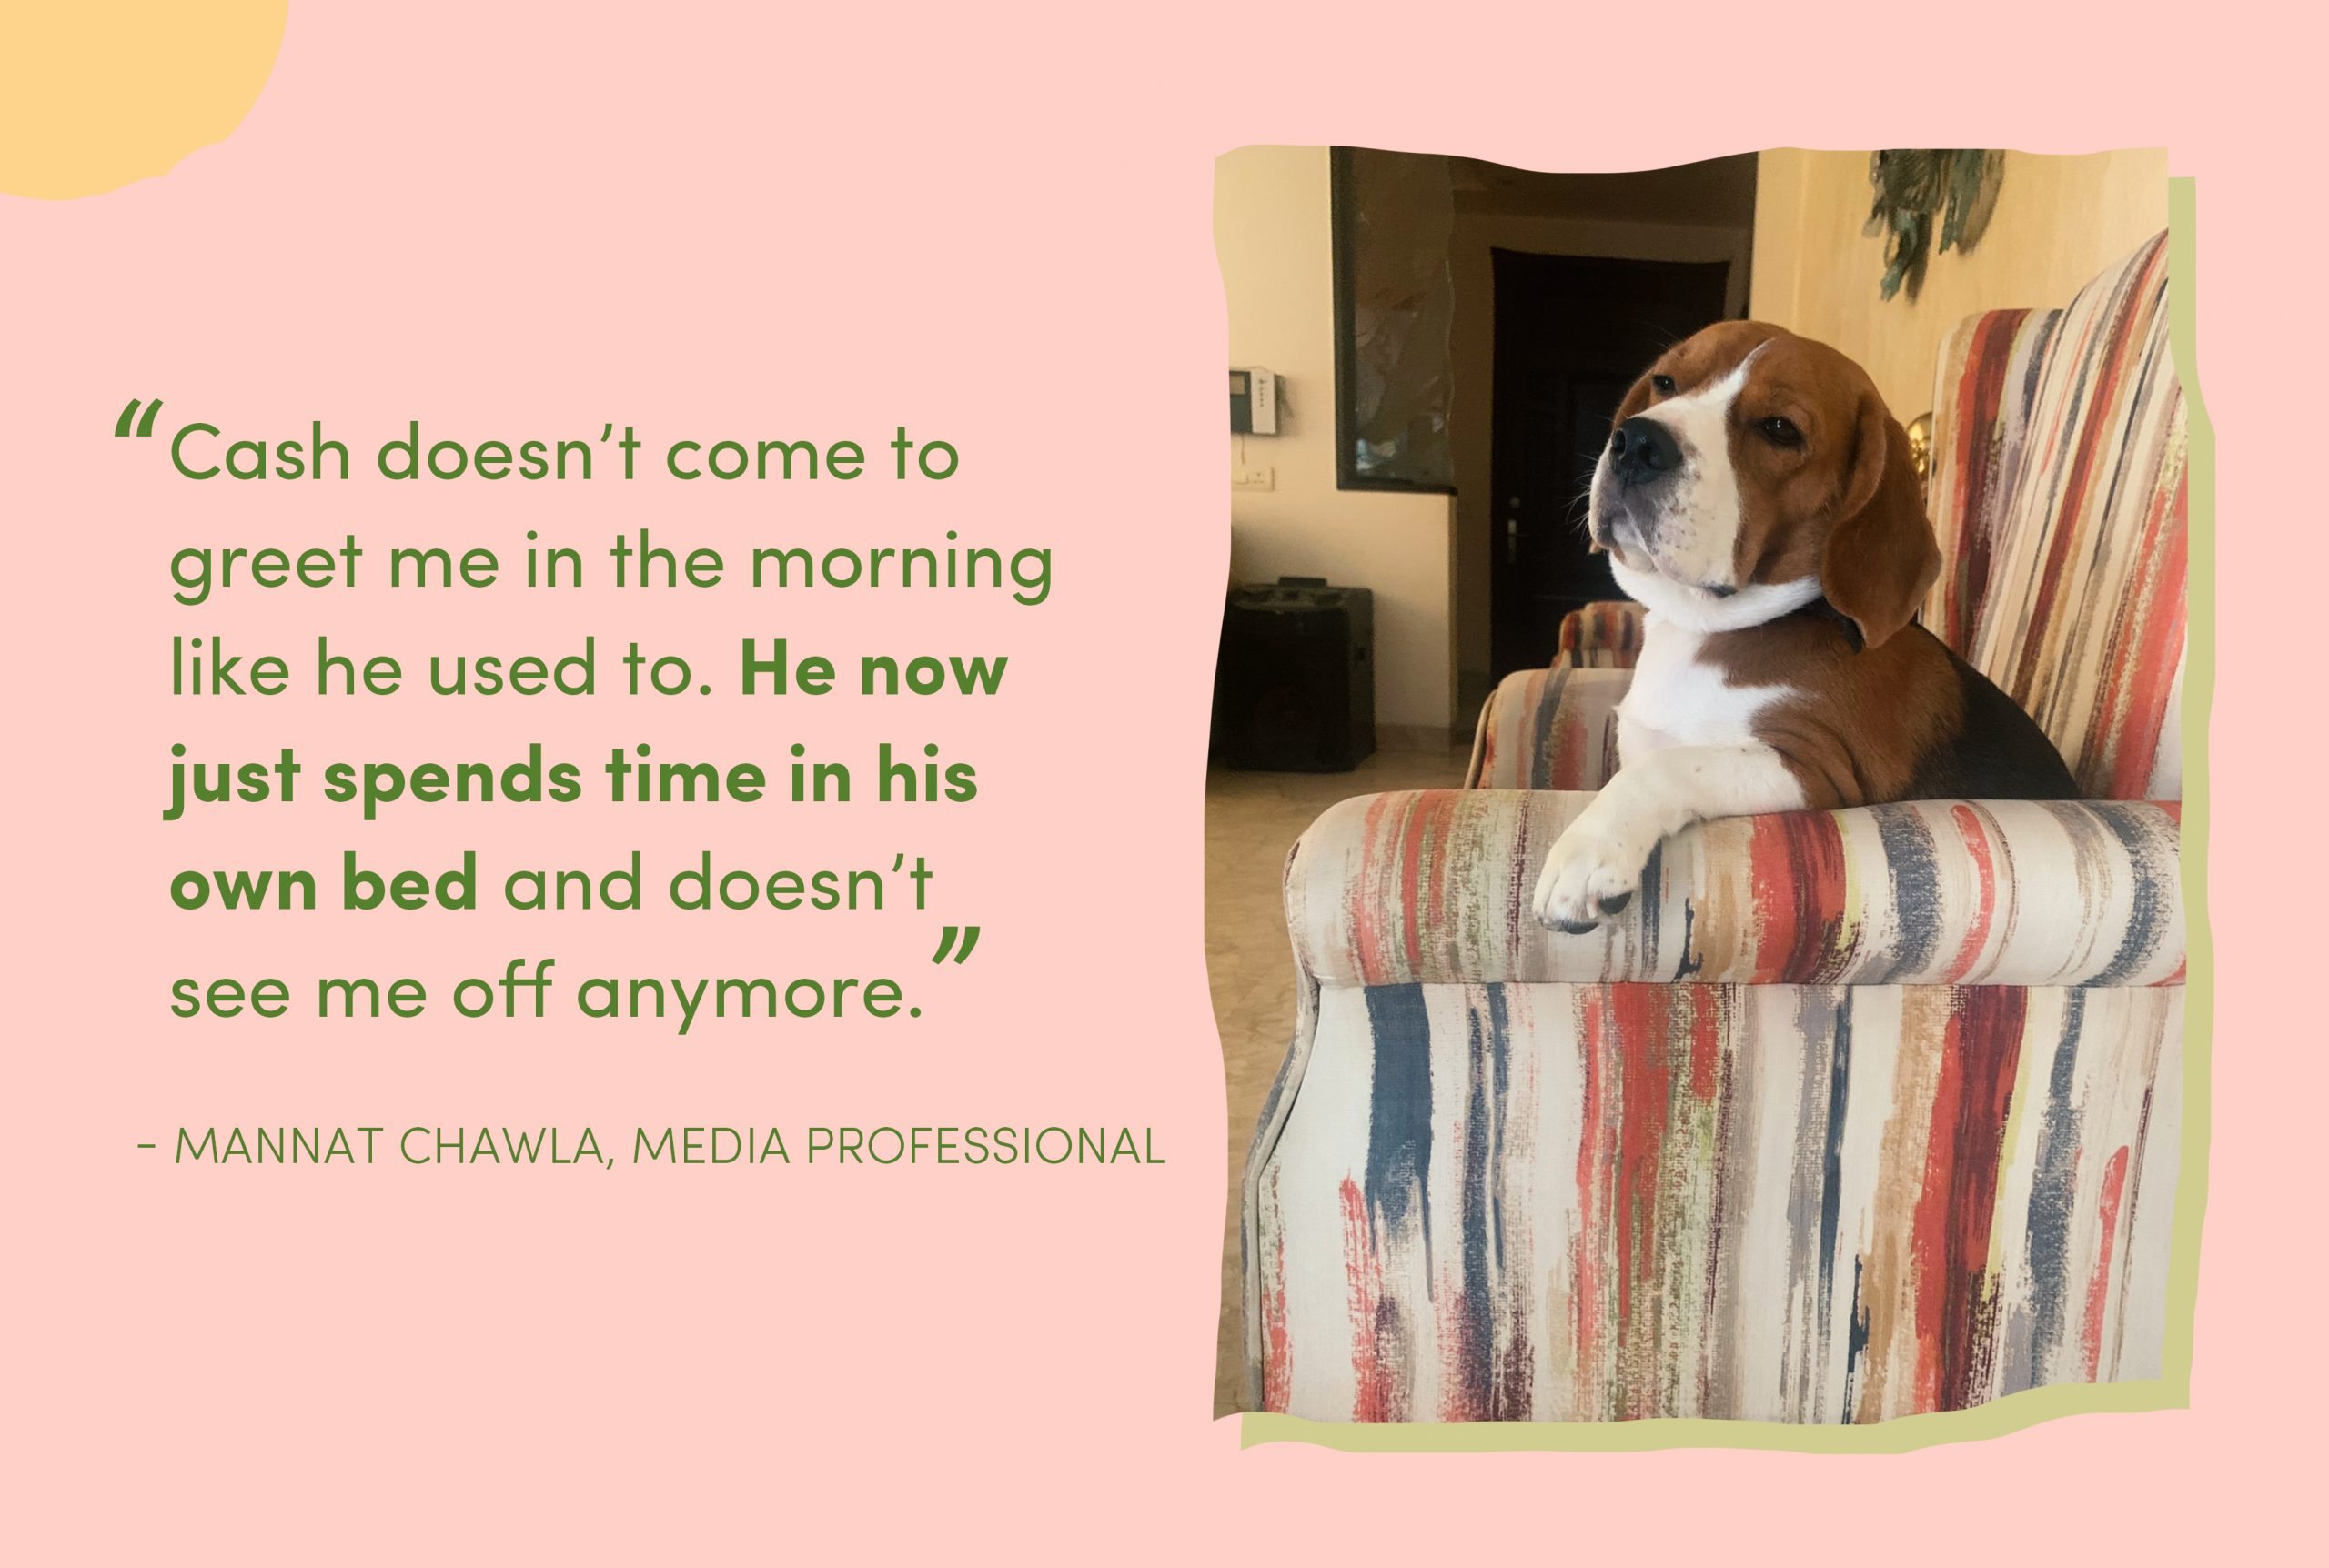 """Image showing Cash, the four-year-old beagle sitting on a couch, with text next to him that reads: """"Cash doesn't come to greet me in the morning like he used to. He now just spends time in his own bed and doesn't see me off anymore,"""" - Mannat Chawla, Media Professional"""